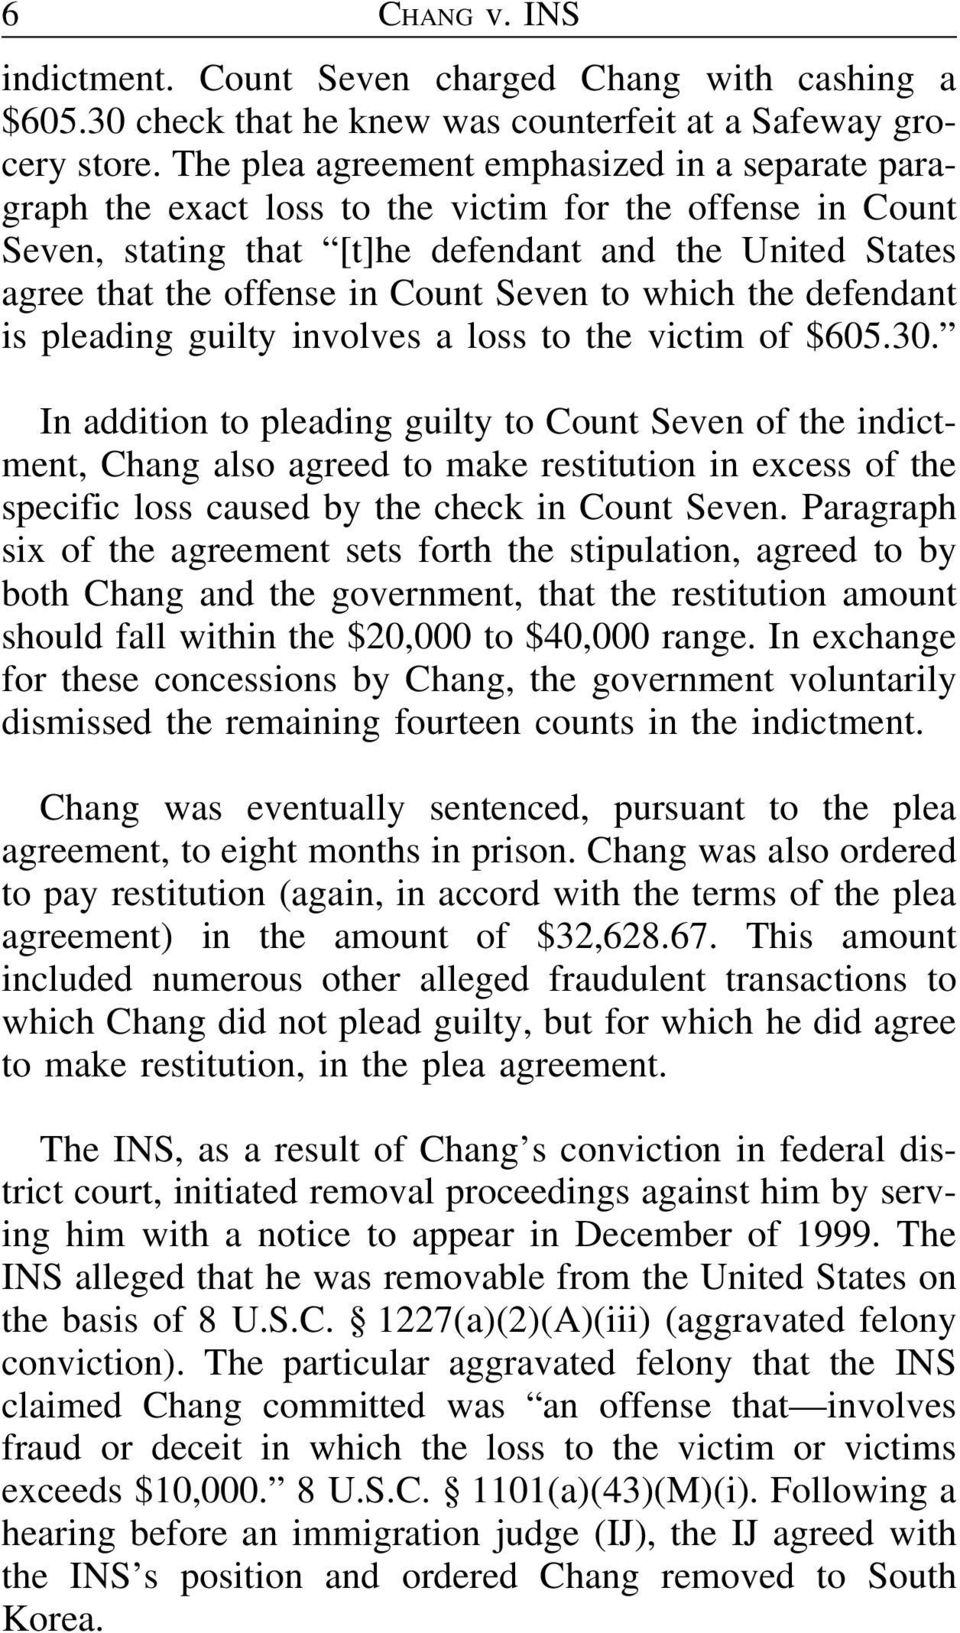 Seven to which the defendant is pleading guilty involves a loss to the victim of $605.30.